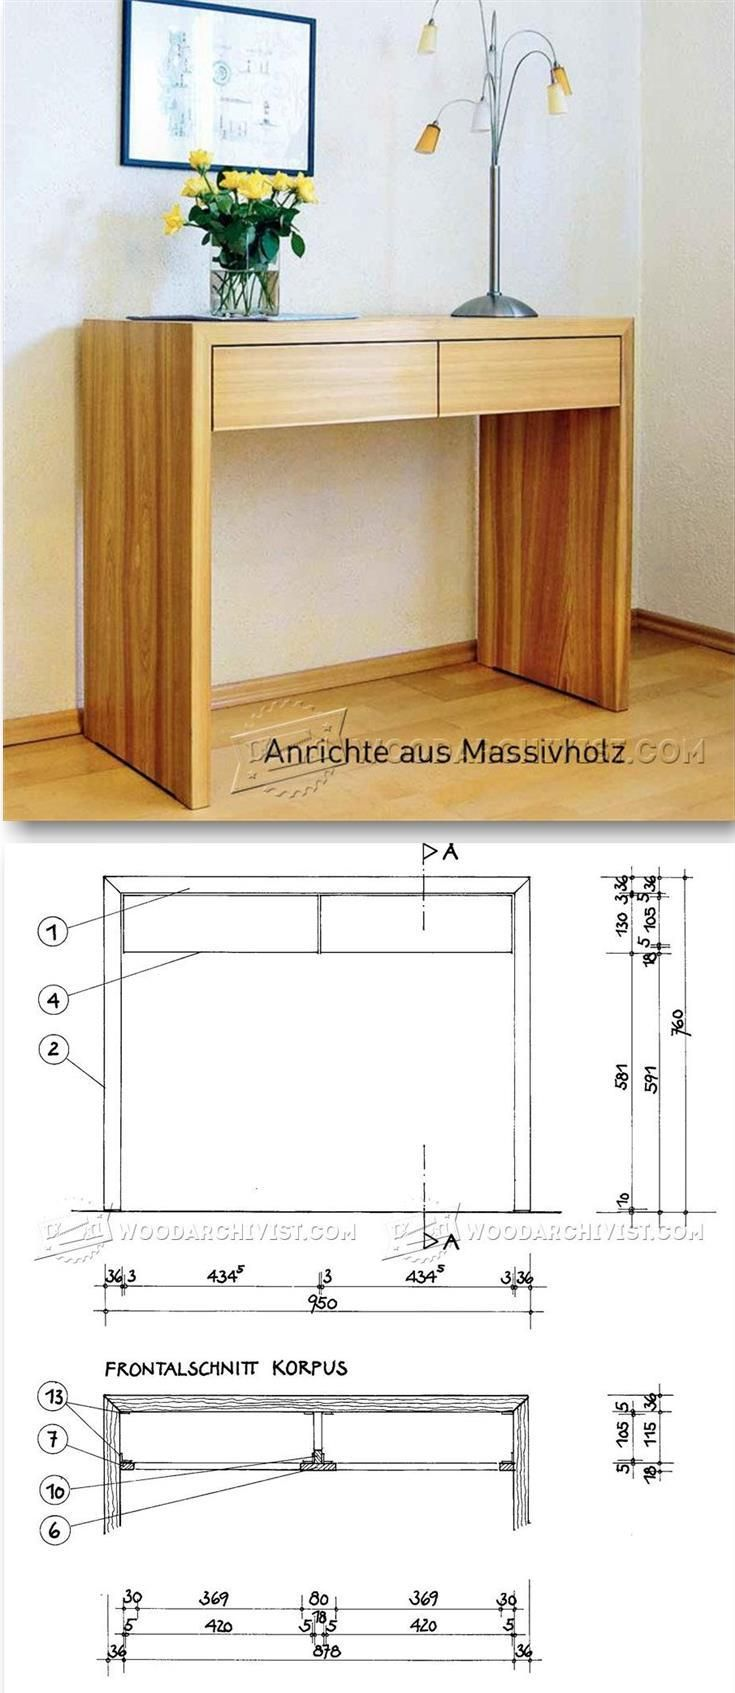 Sideboard Plans - Furniture Plans and Projects | WoodArchivist.com